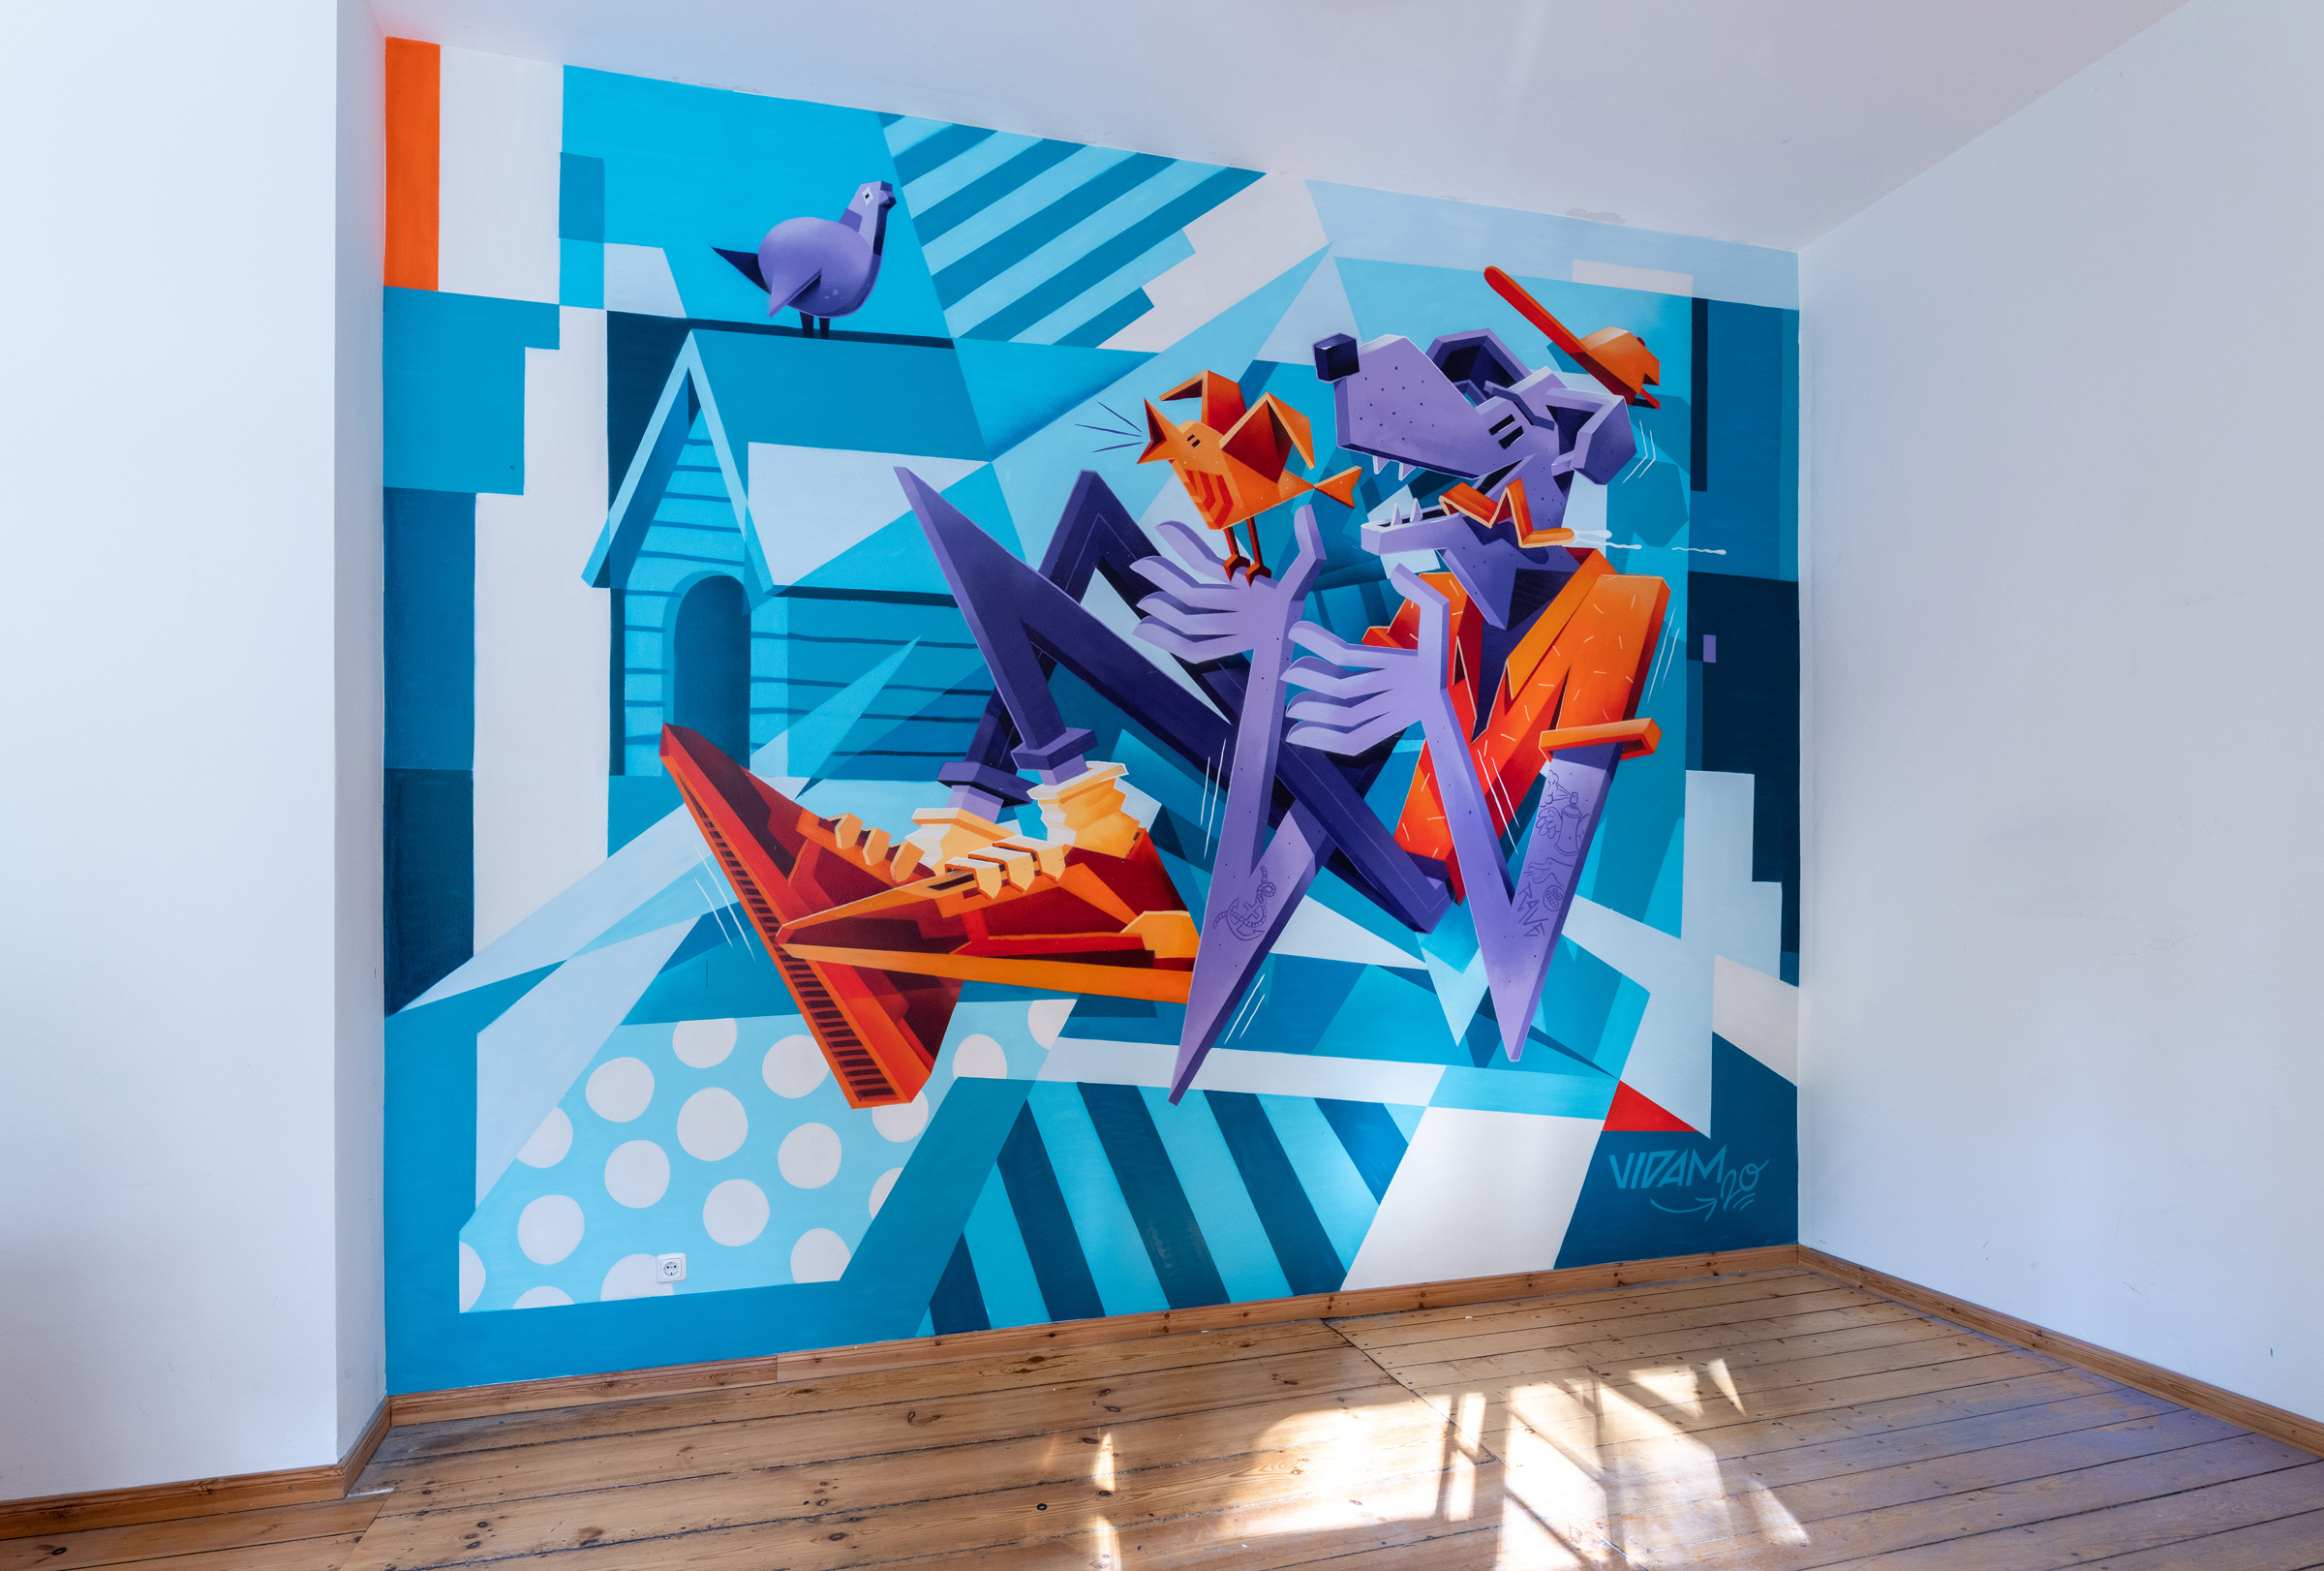 Vidam for Book a Streetartist